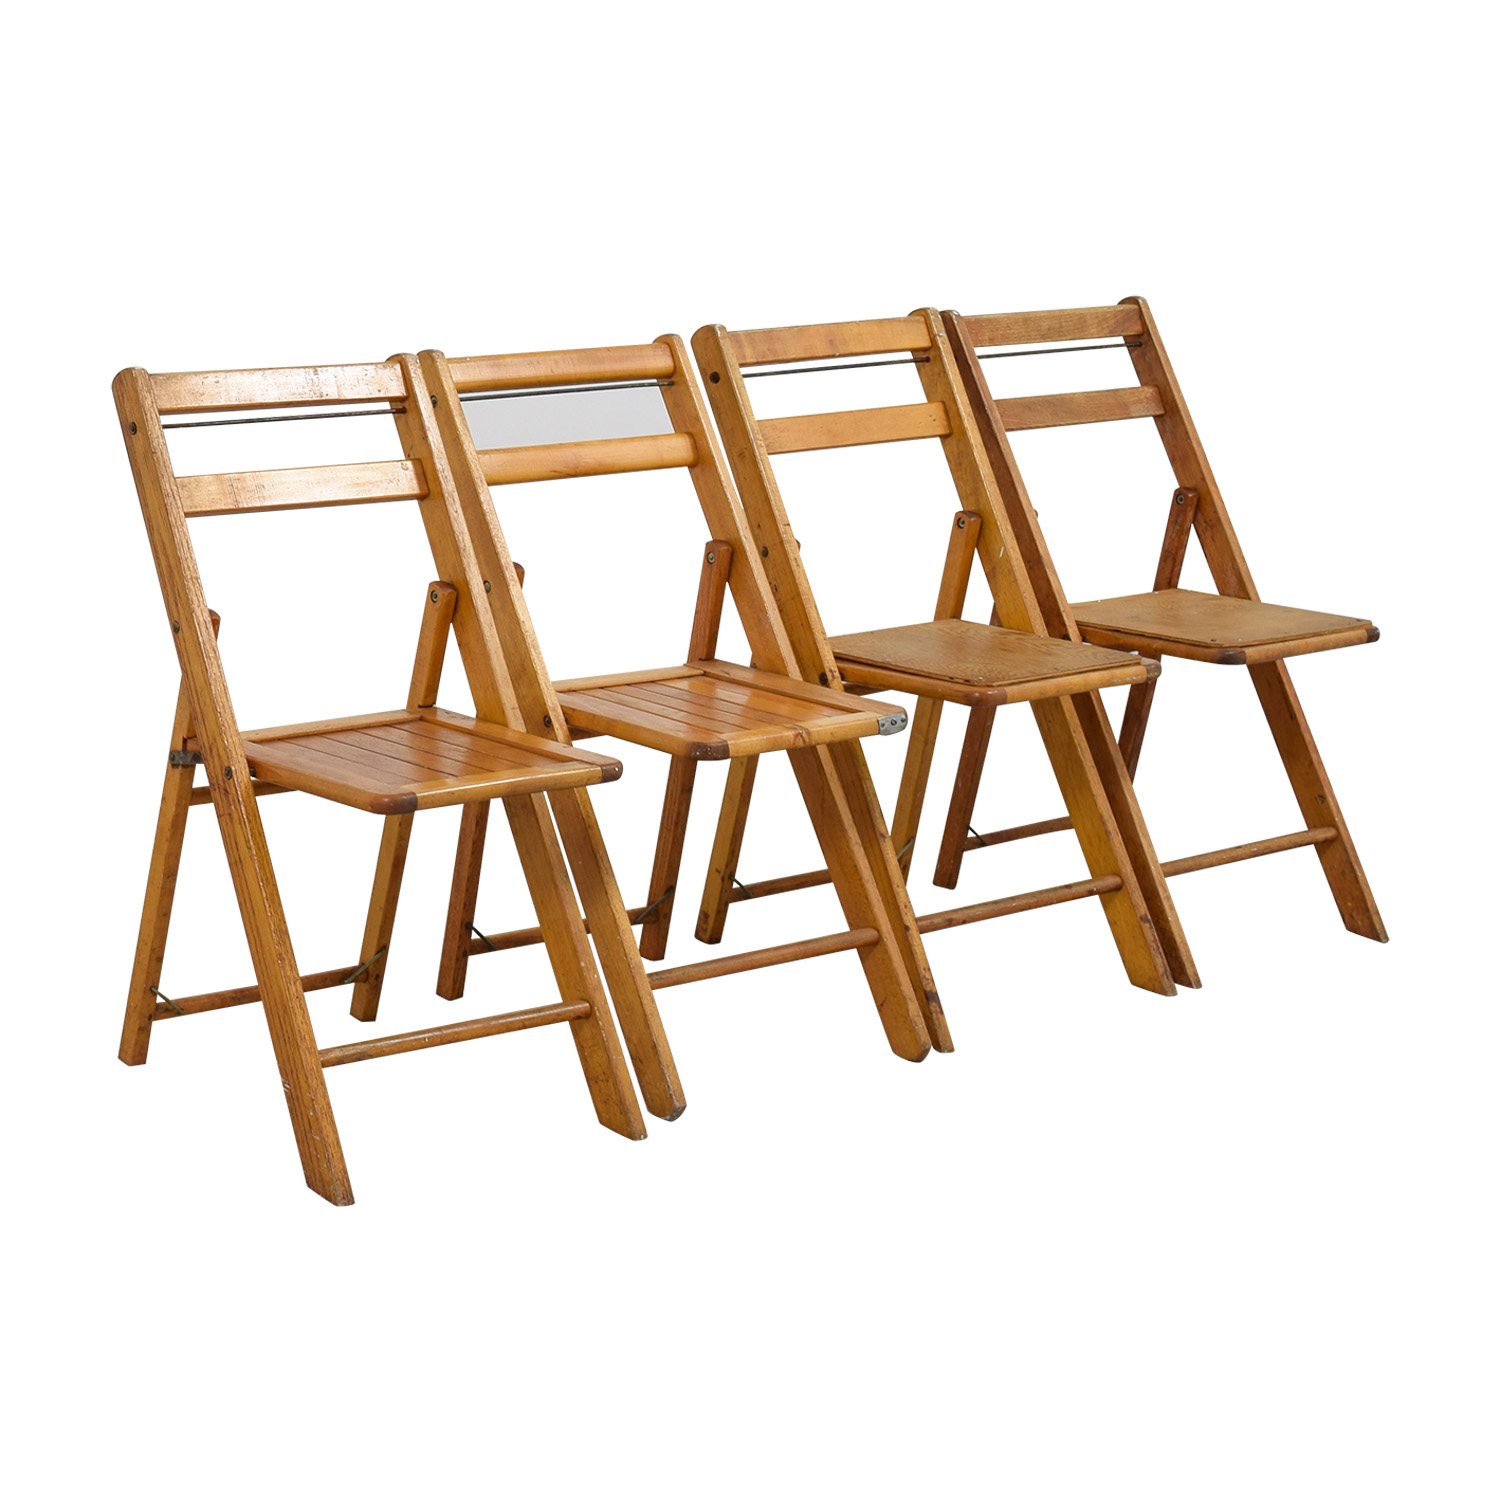 61% OFF Rustic Wood Folding Chairs Chairs